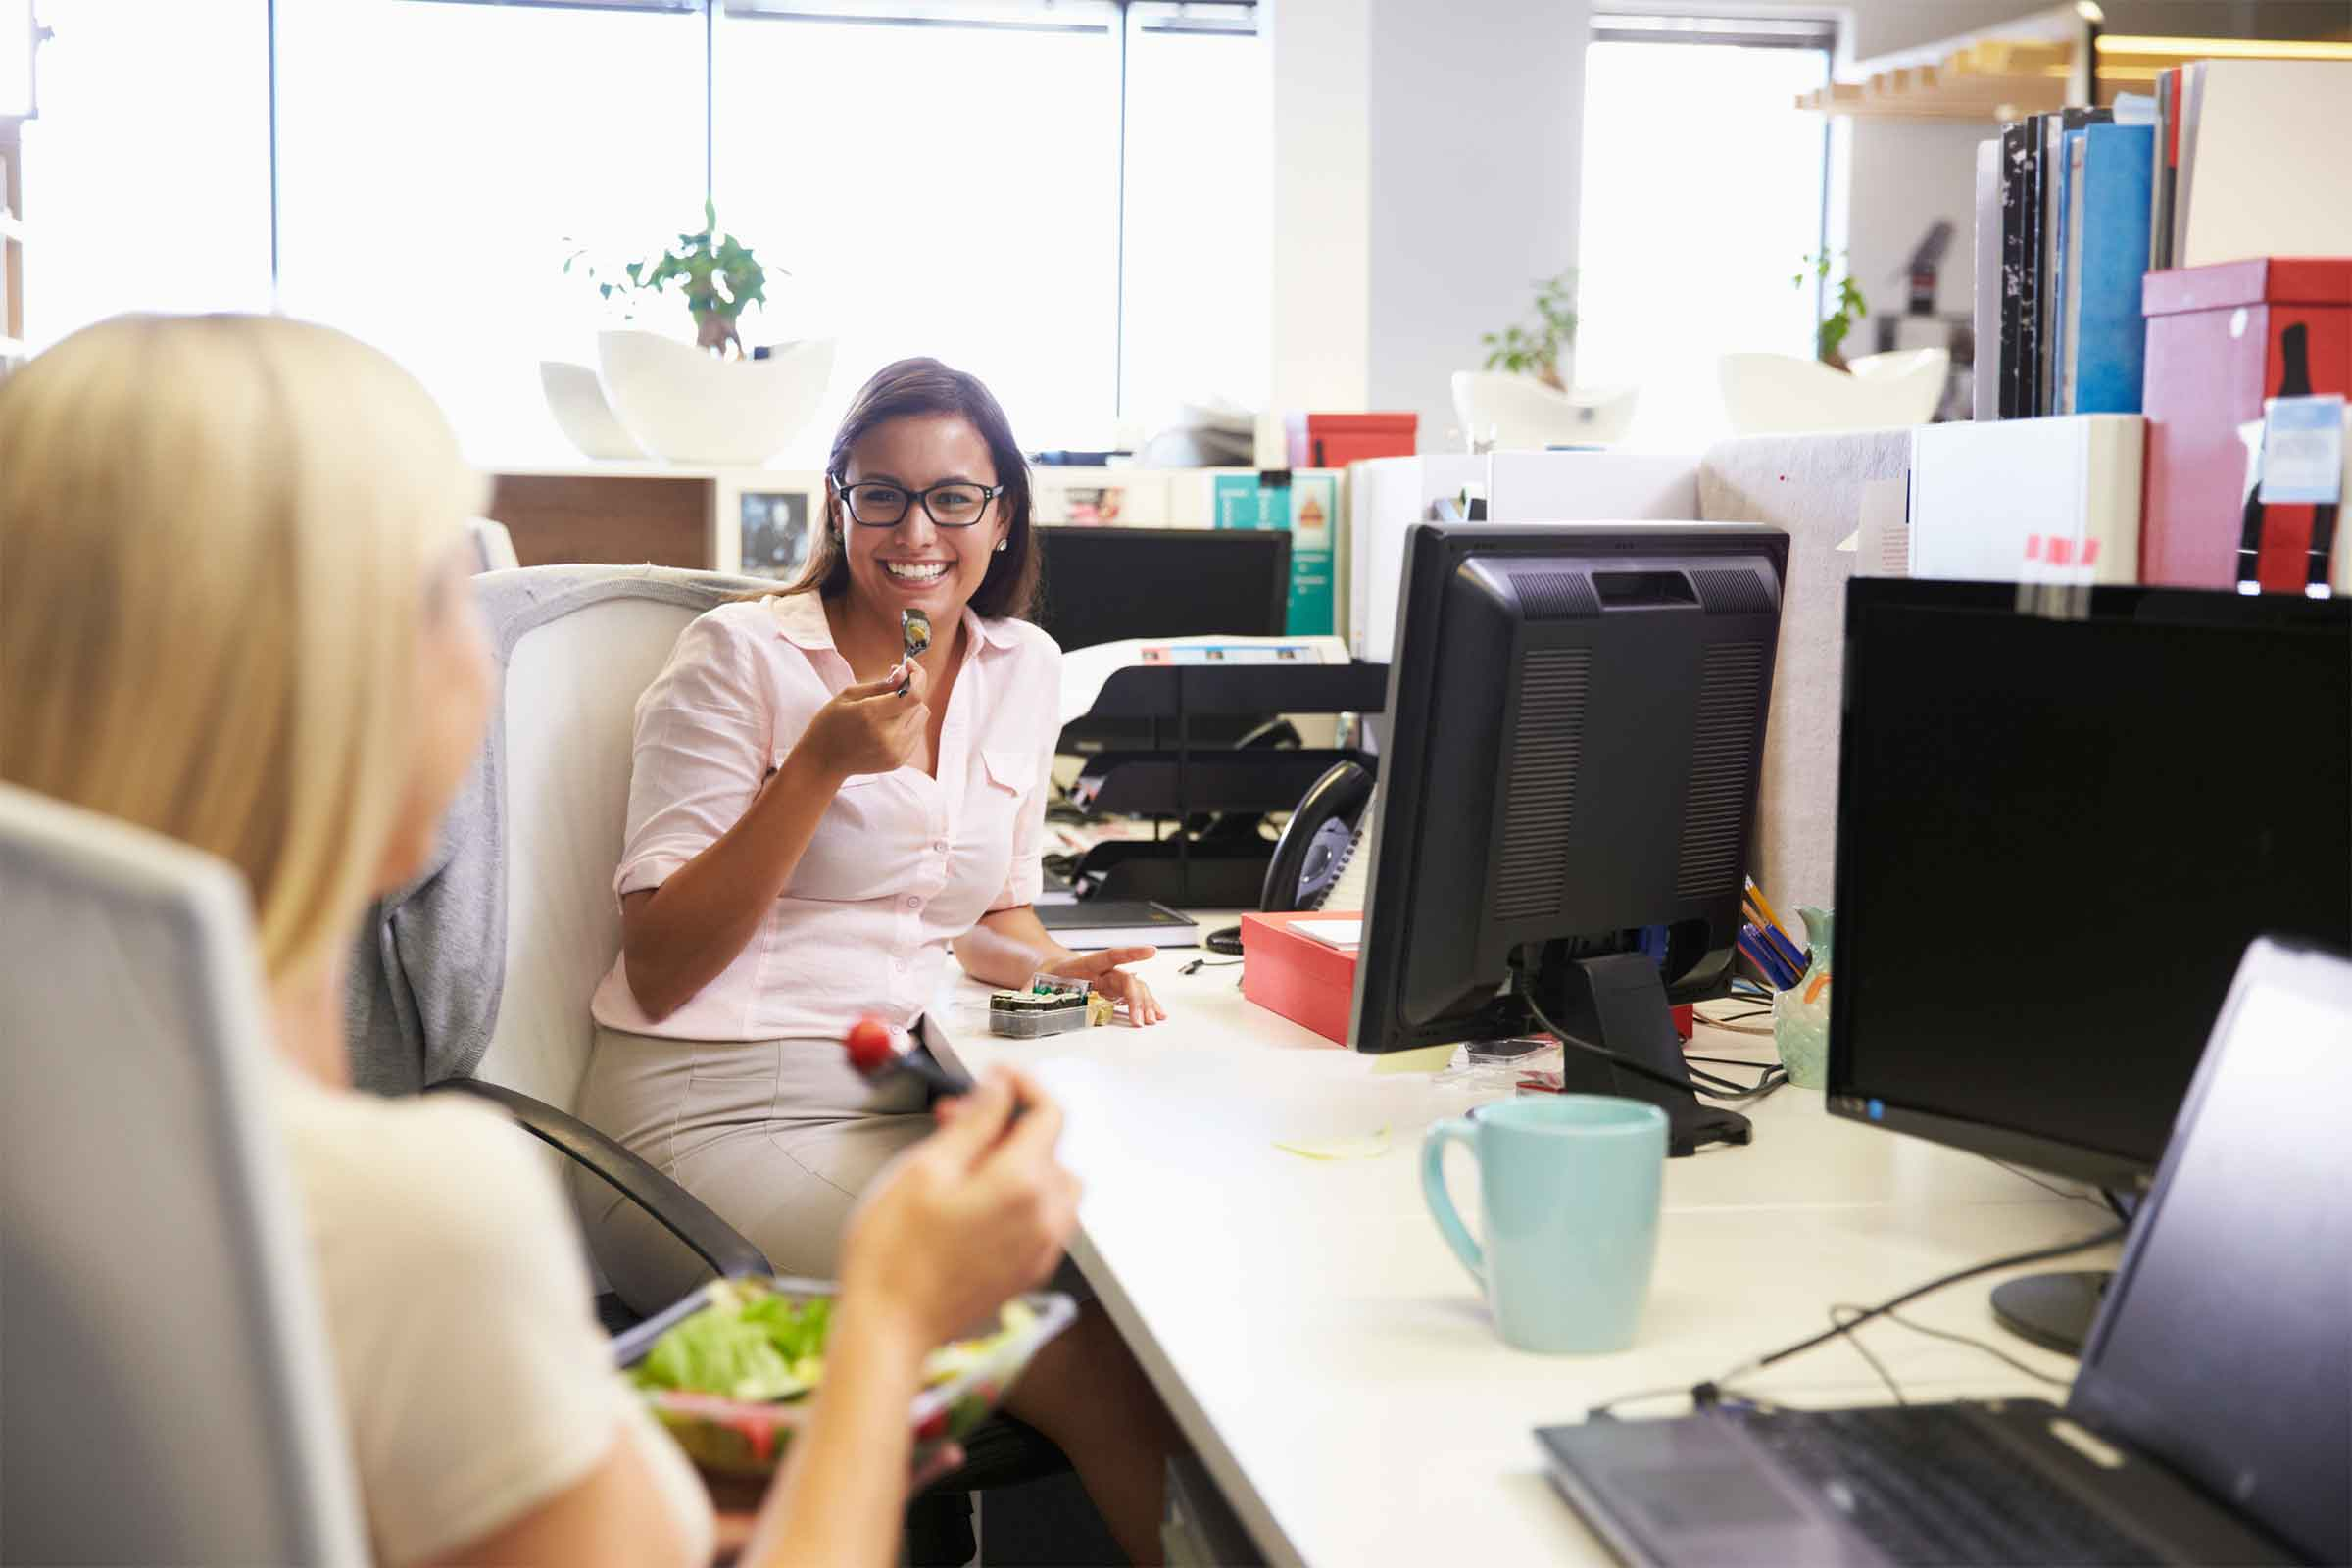 74% of South Africans say offering flexible working makes employees more loyal